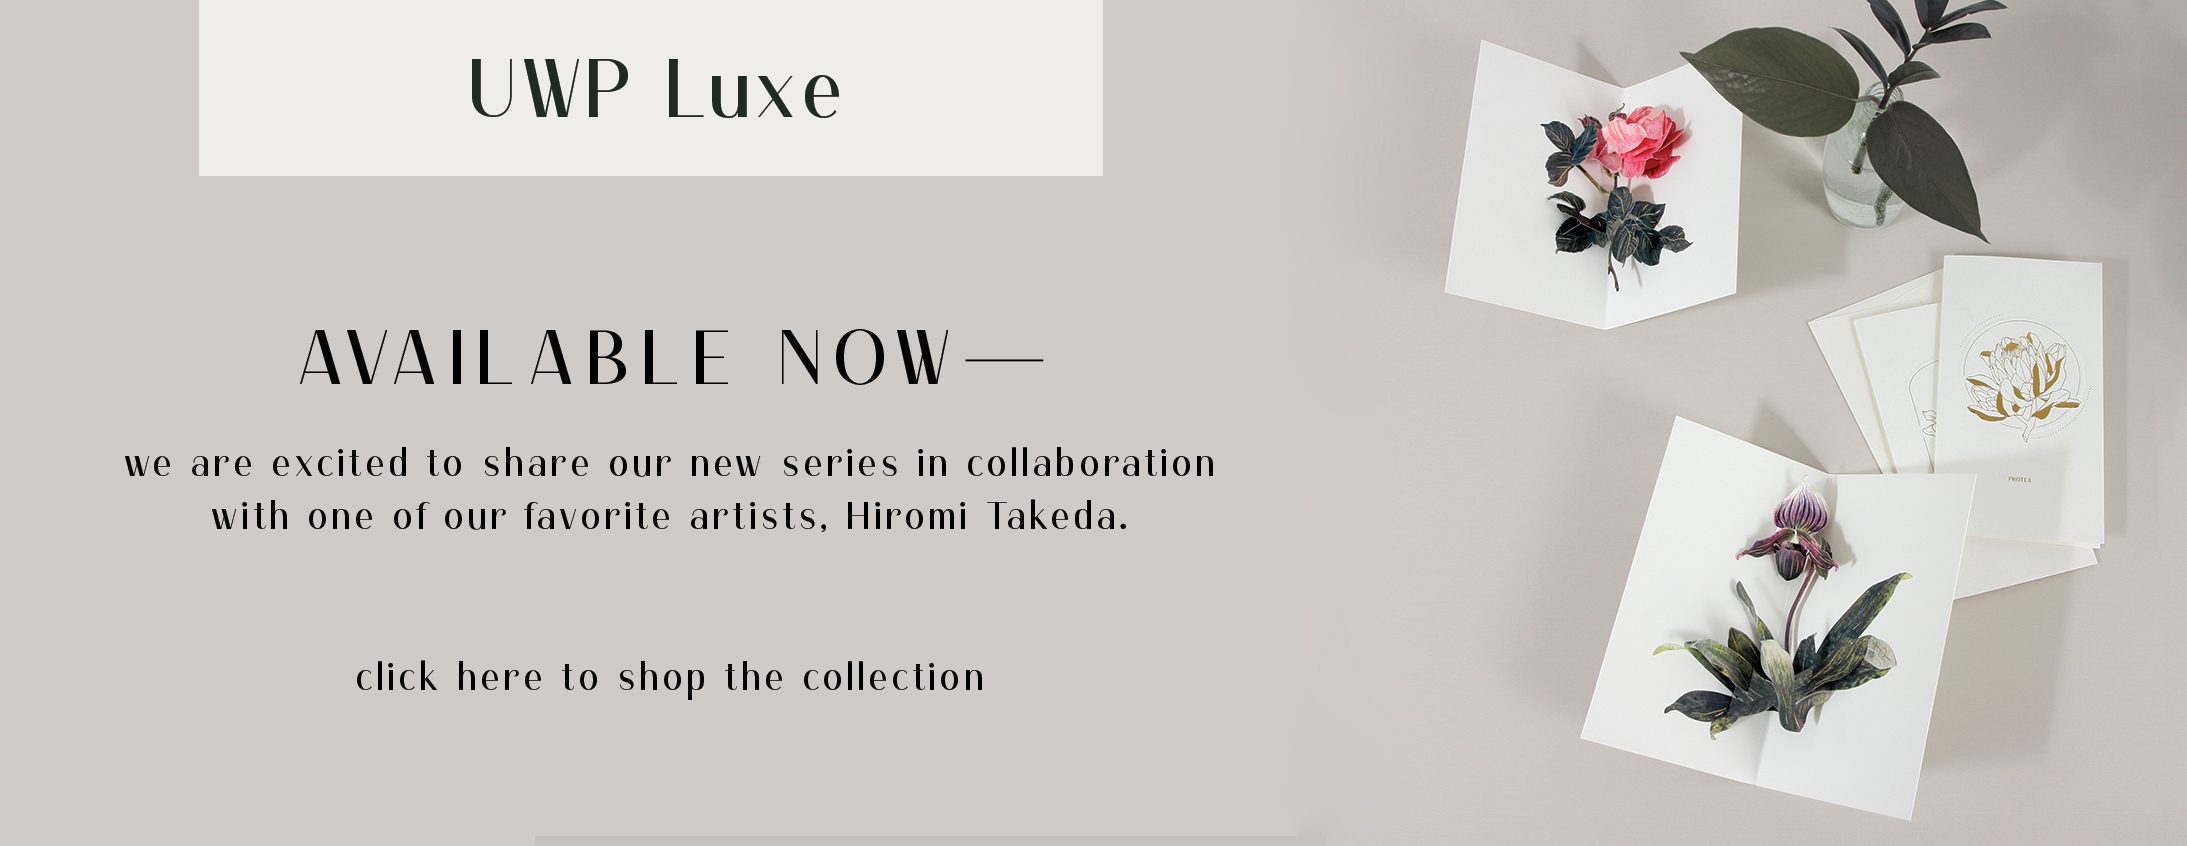 luxe-slider-Hiromi-available